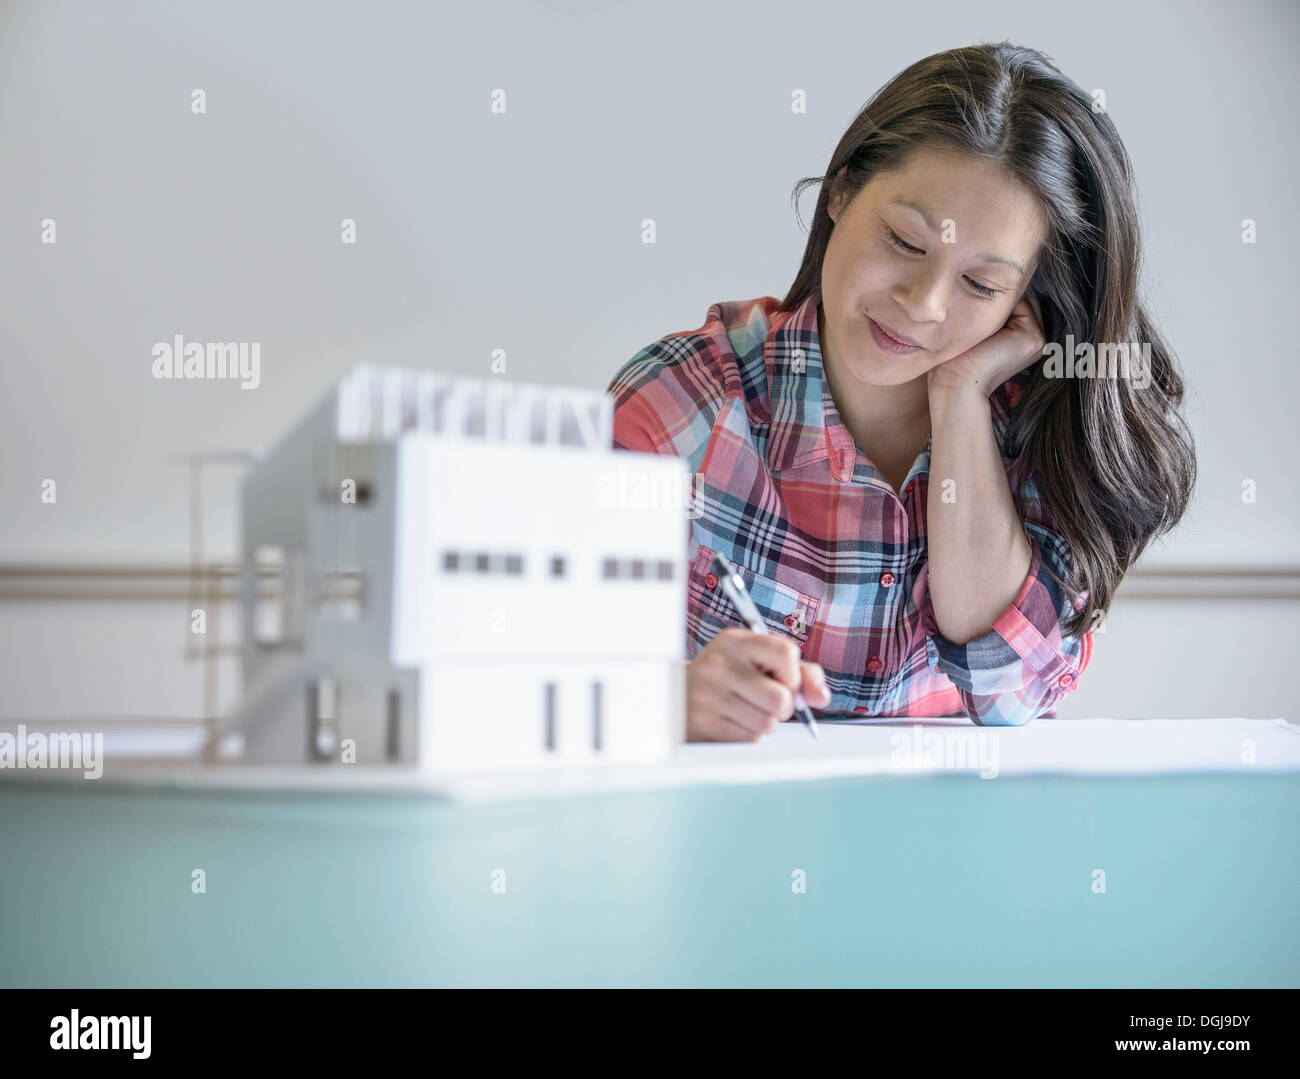 Architect working next to model building - Stock Image